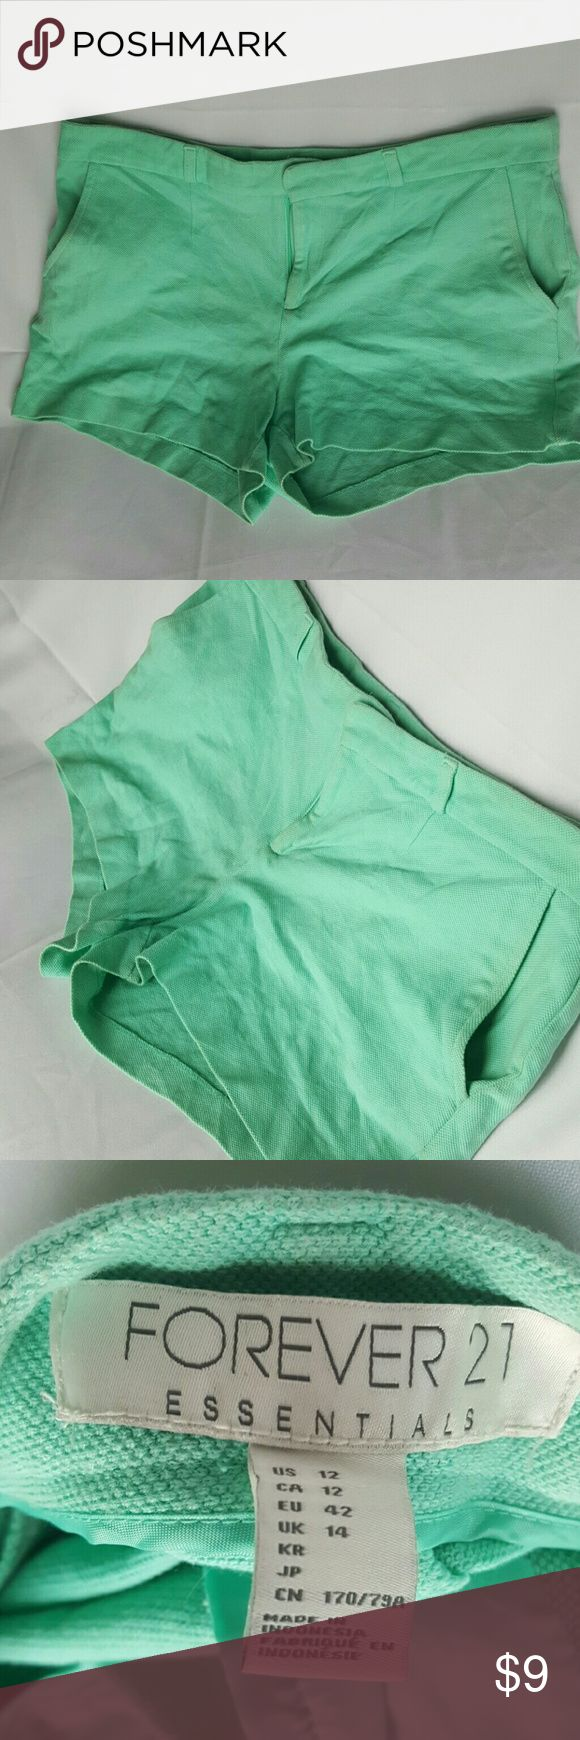 Mint green short Beautiful mint green shorts. A cute summer essential. Forever 21 Shorts